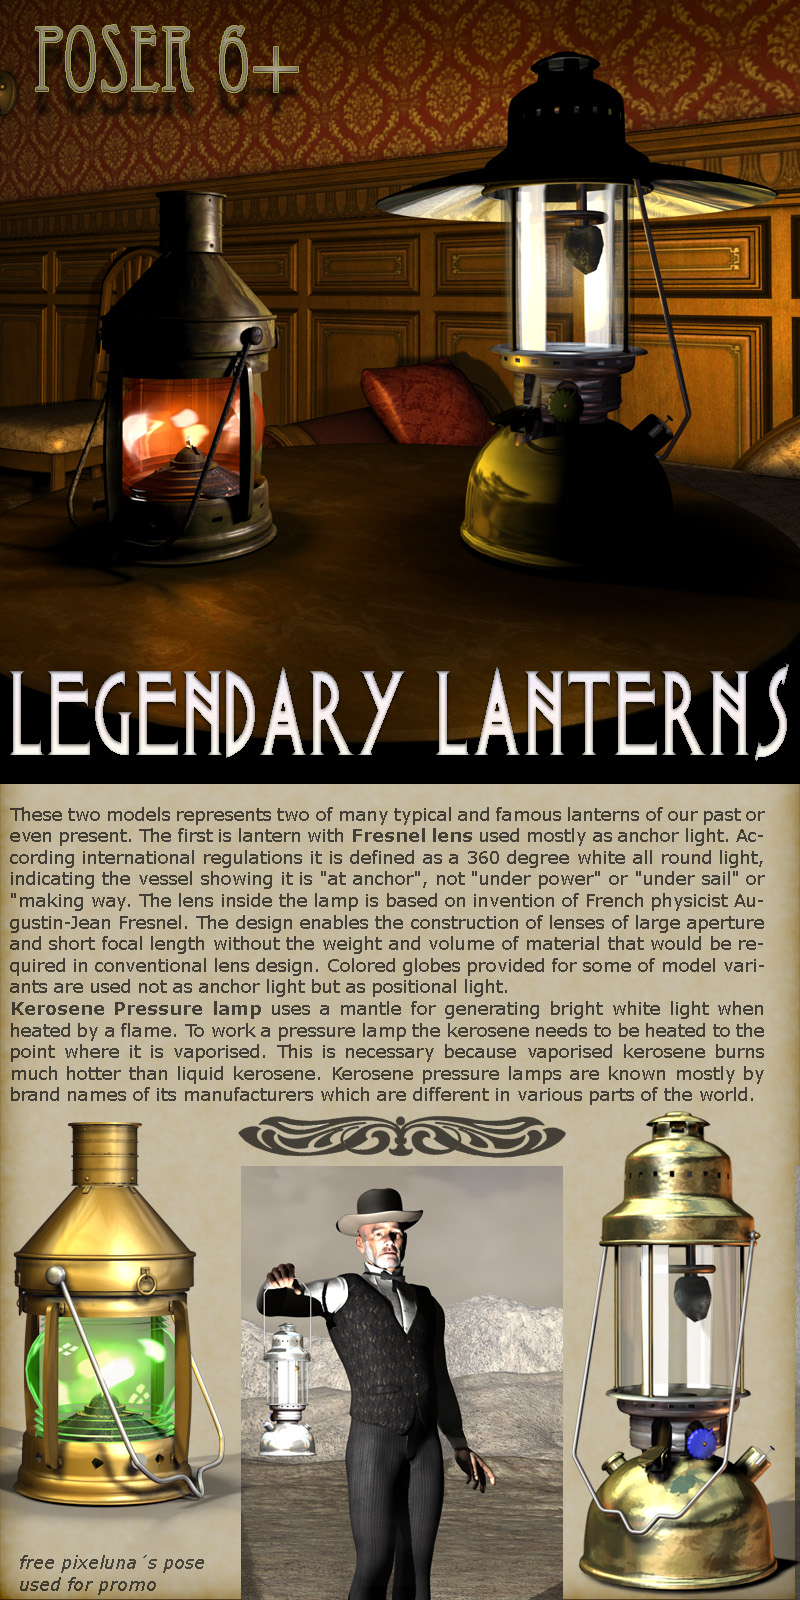 Legendary Lanterns - Poser Version